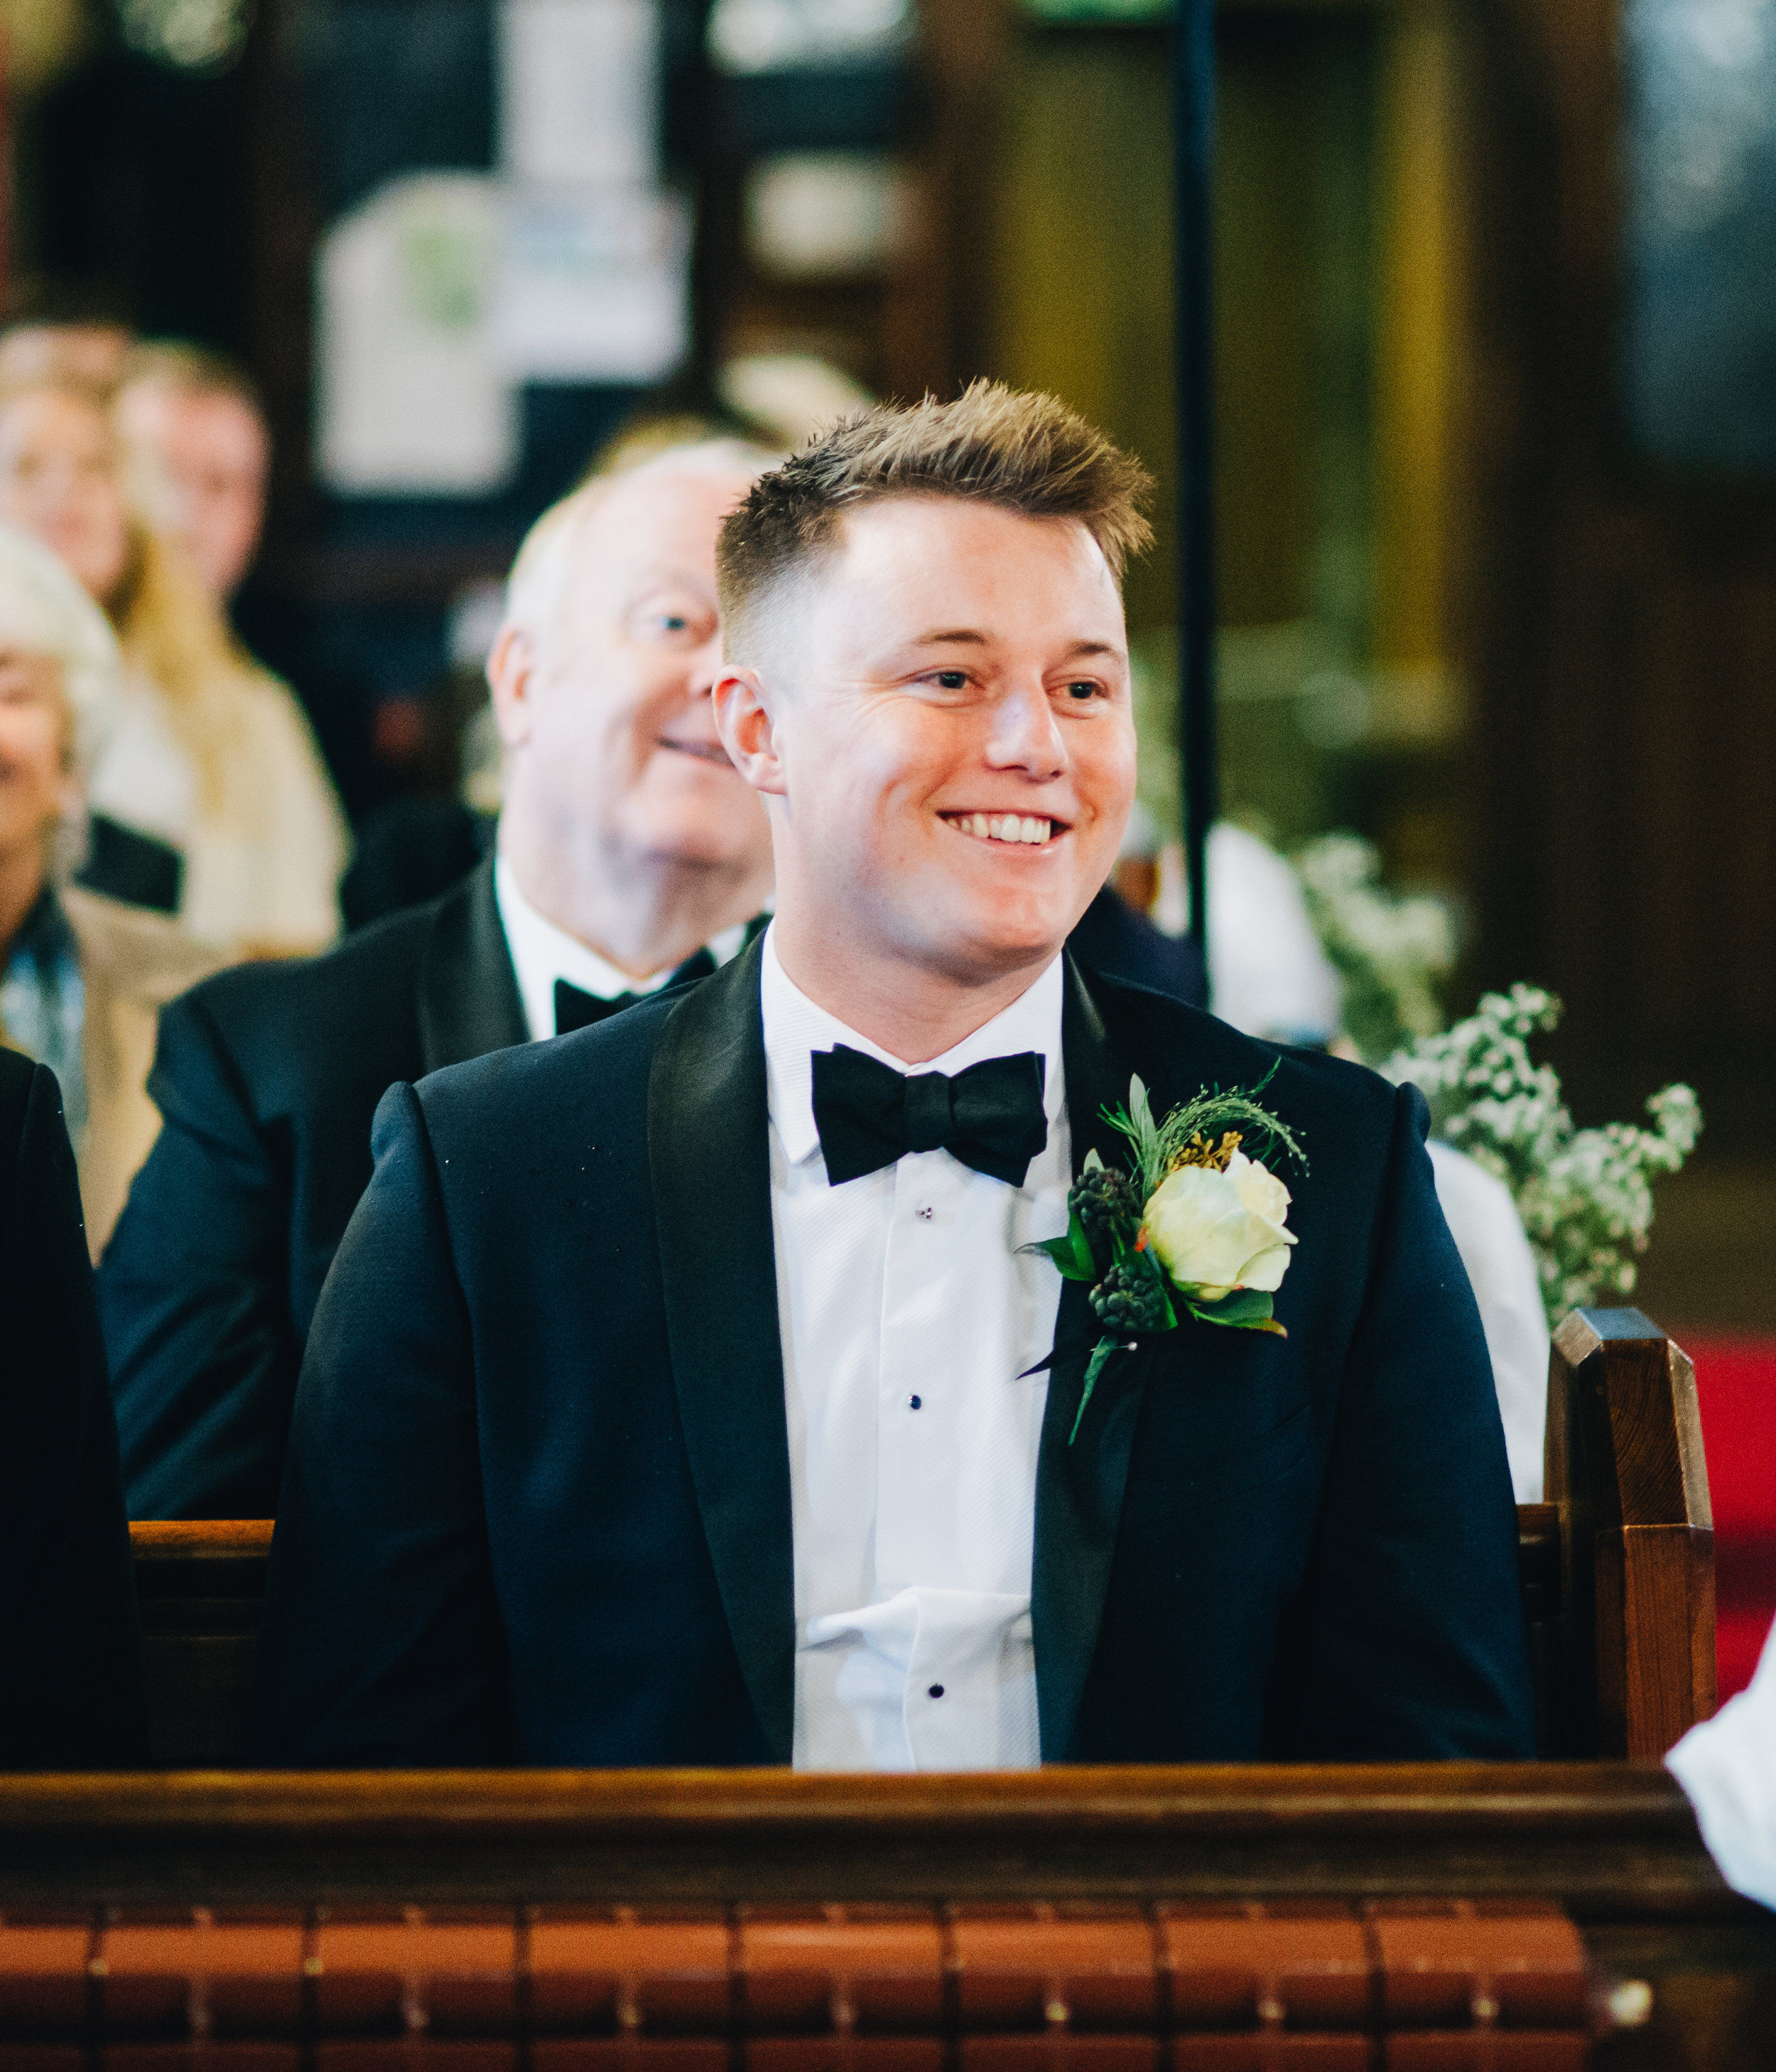 groom smiling whilst waiting for bride to arrive